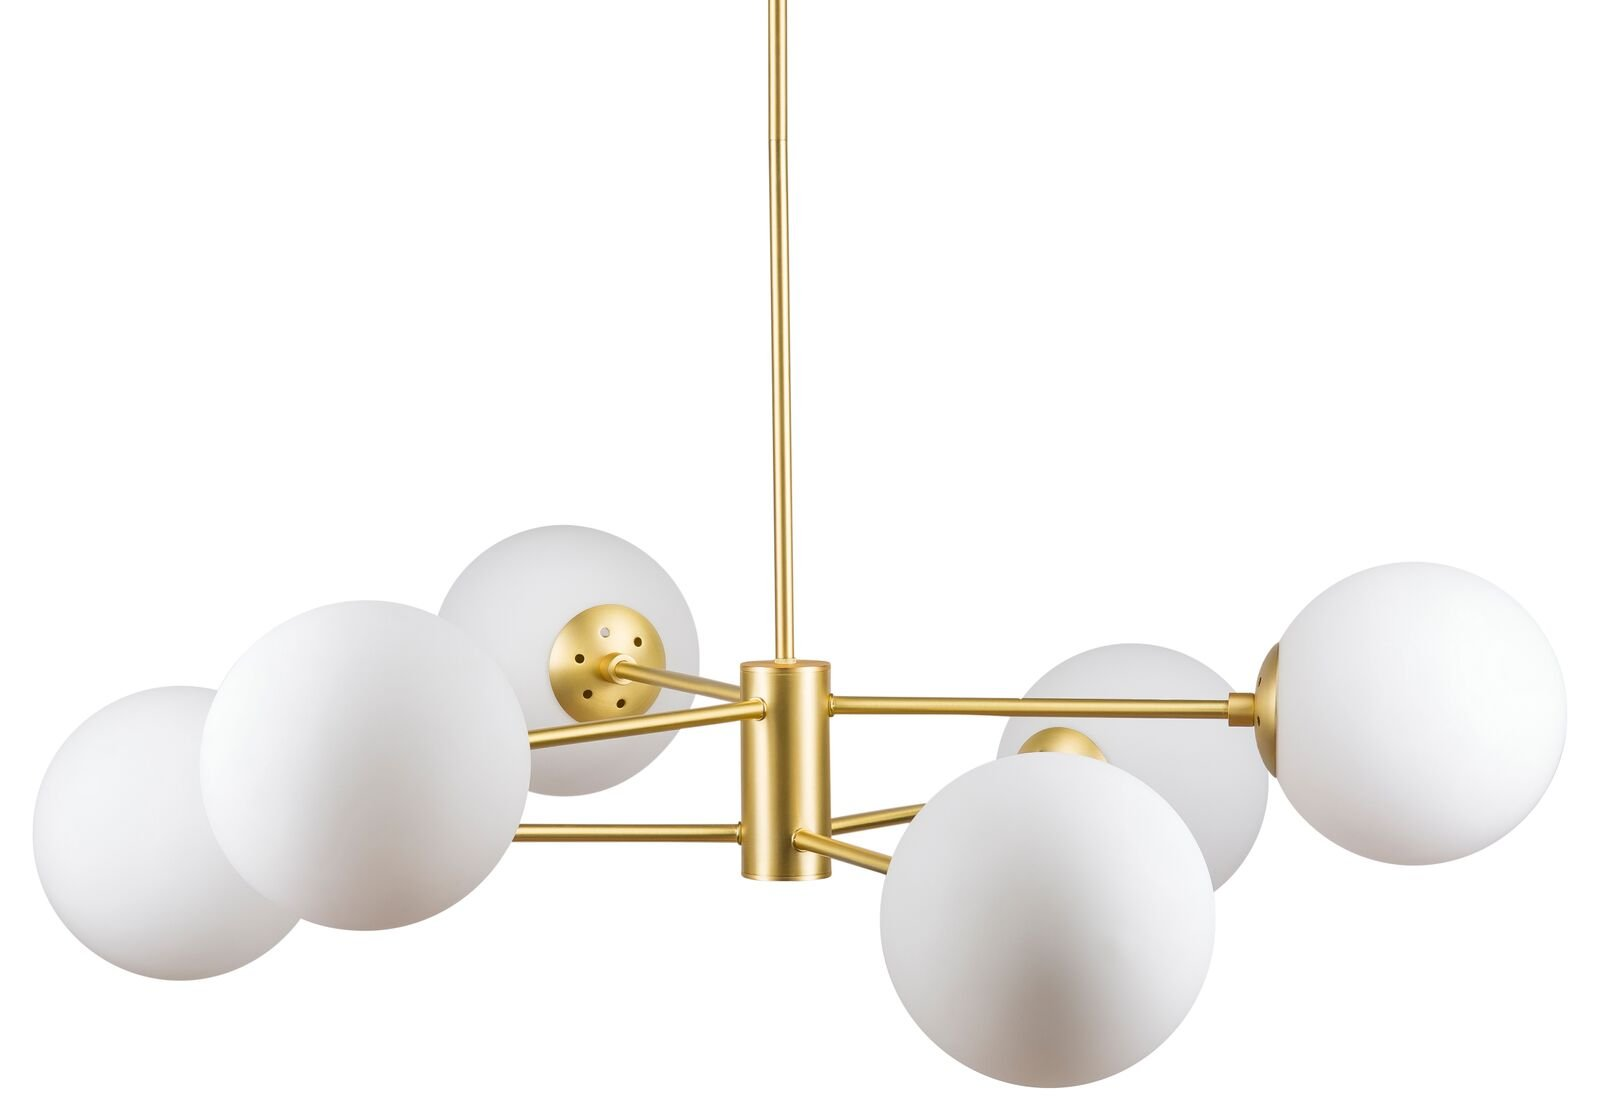 Caserti Mid Century Modern 6 Light Chandelier | Satin Brass Pendant Lighting LL-CH319-3SB - Ideal as kitchen island lighting, a dining room chandelier or as a living room hanging light the Caserti 6 light globe chandelier is perfect for any modern home decor The solid metal construction with a smooth satin brass finish is perfect for mid century, retro or industrial pendant lighting Uses six E26-base bulbs, 60W max (not included); dimmable when used with dimmable bulbs and compatible dimmer switch. Works with most medium base bulbs up to 60W, compatible with smart bulbs - kitchen-dining-room-decor, kitchen-dining-room, chandeliers-lighting - 51VB73a2JZL -